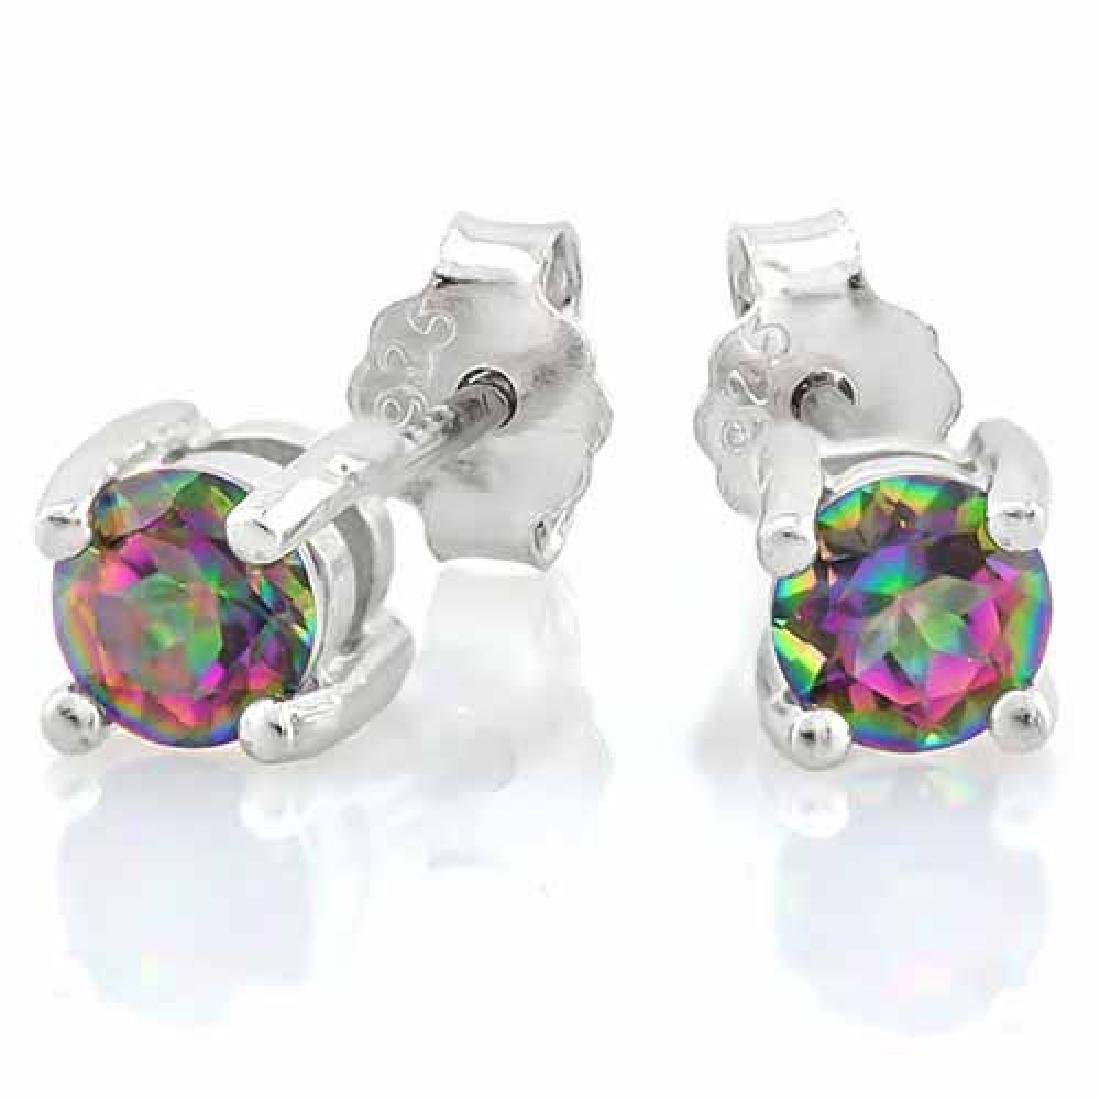 1/2 CARAT MYSTIC GEMSTONE 925 STERLING SILVER EARRINGS